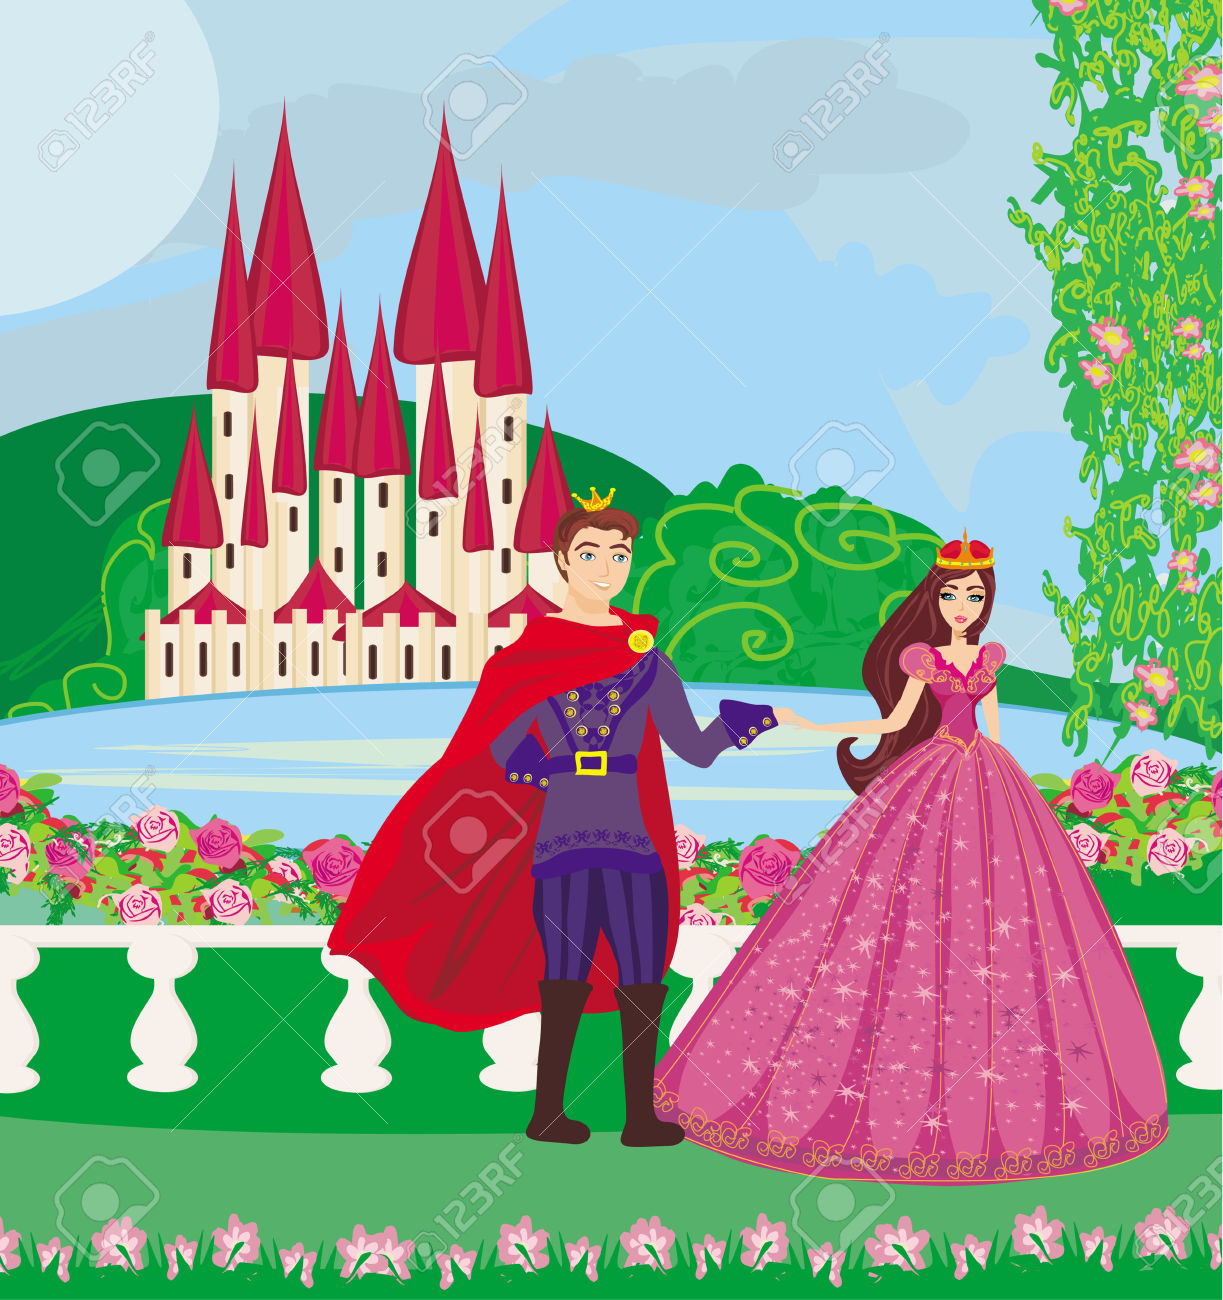 The Princess And The Prince In A Beautiful Garden Royalty Free.